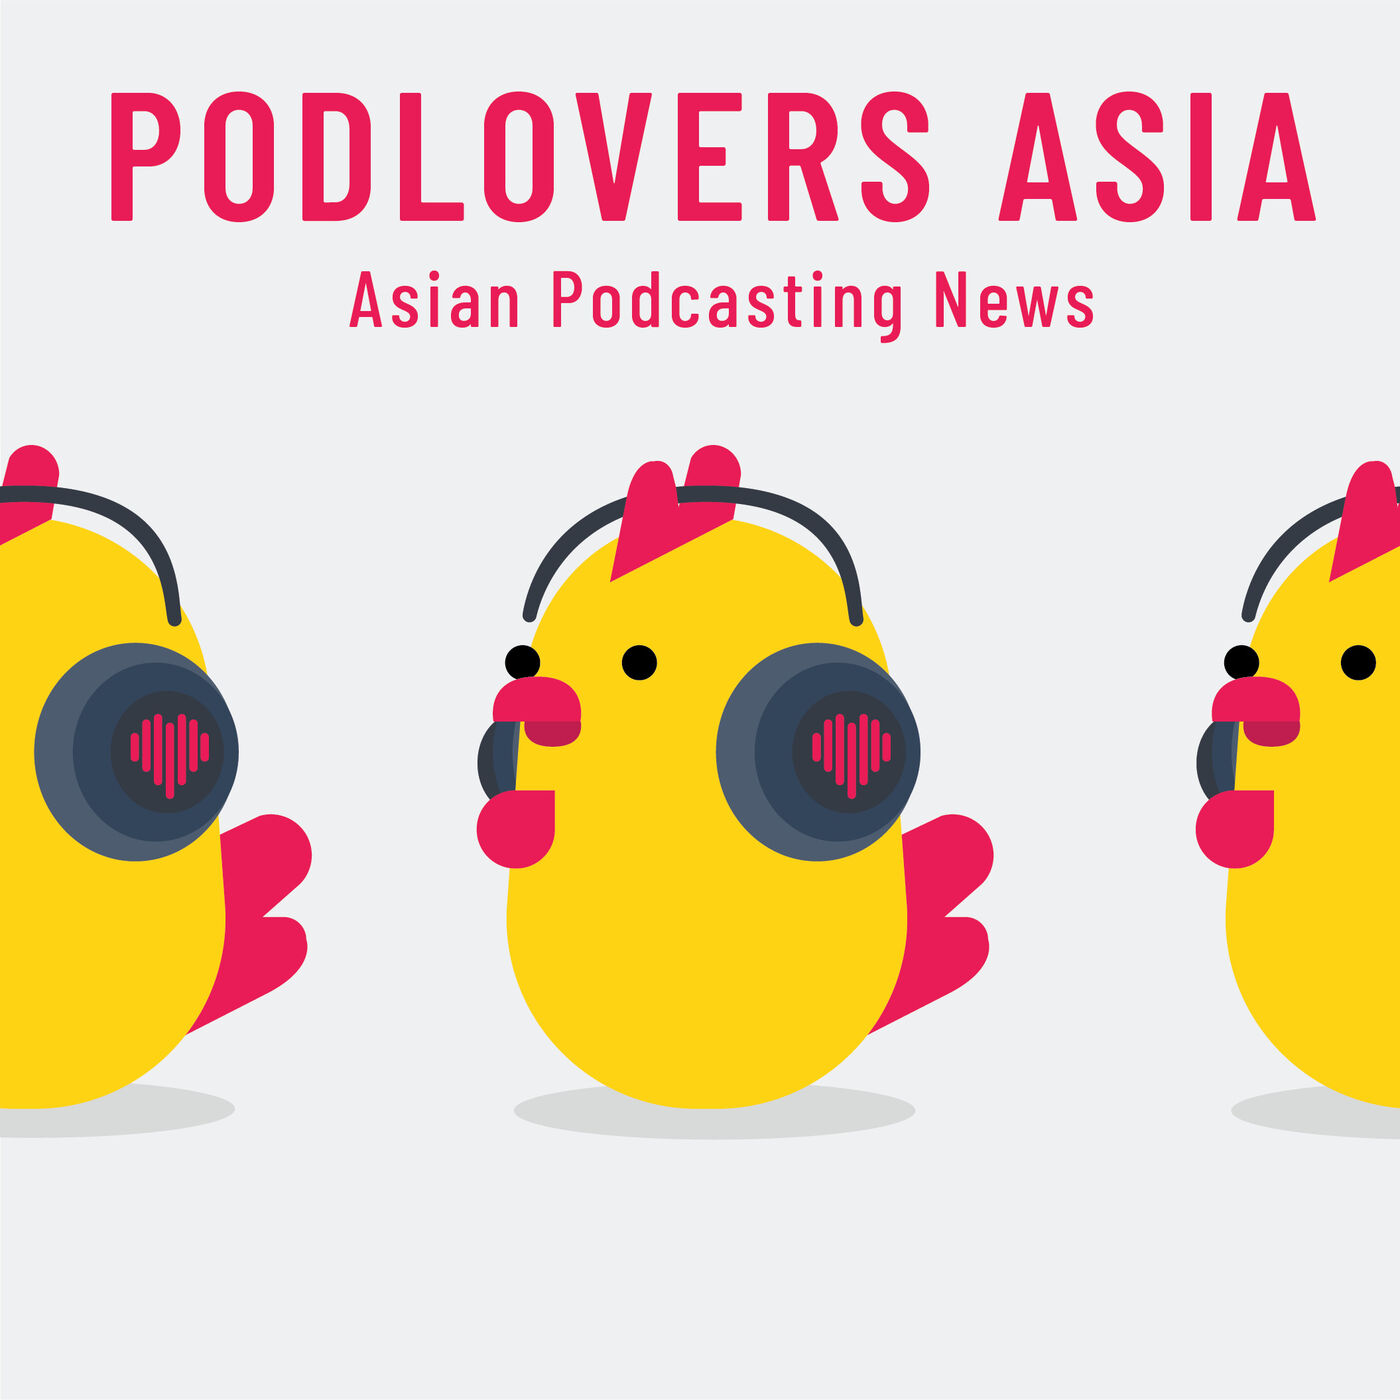 Danny Koordi of Fabl Productions talks becoming an independent podcast producer in Singapore and taking a leap of faith